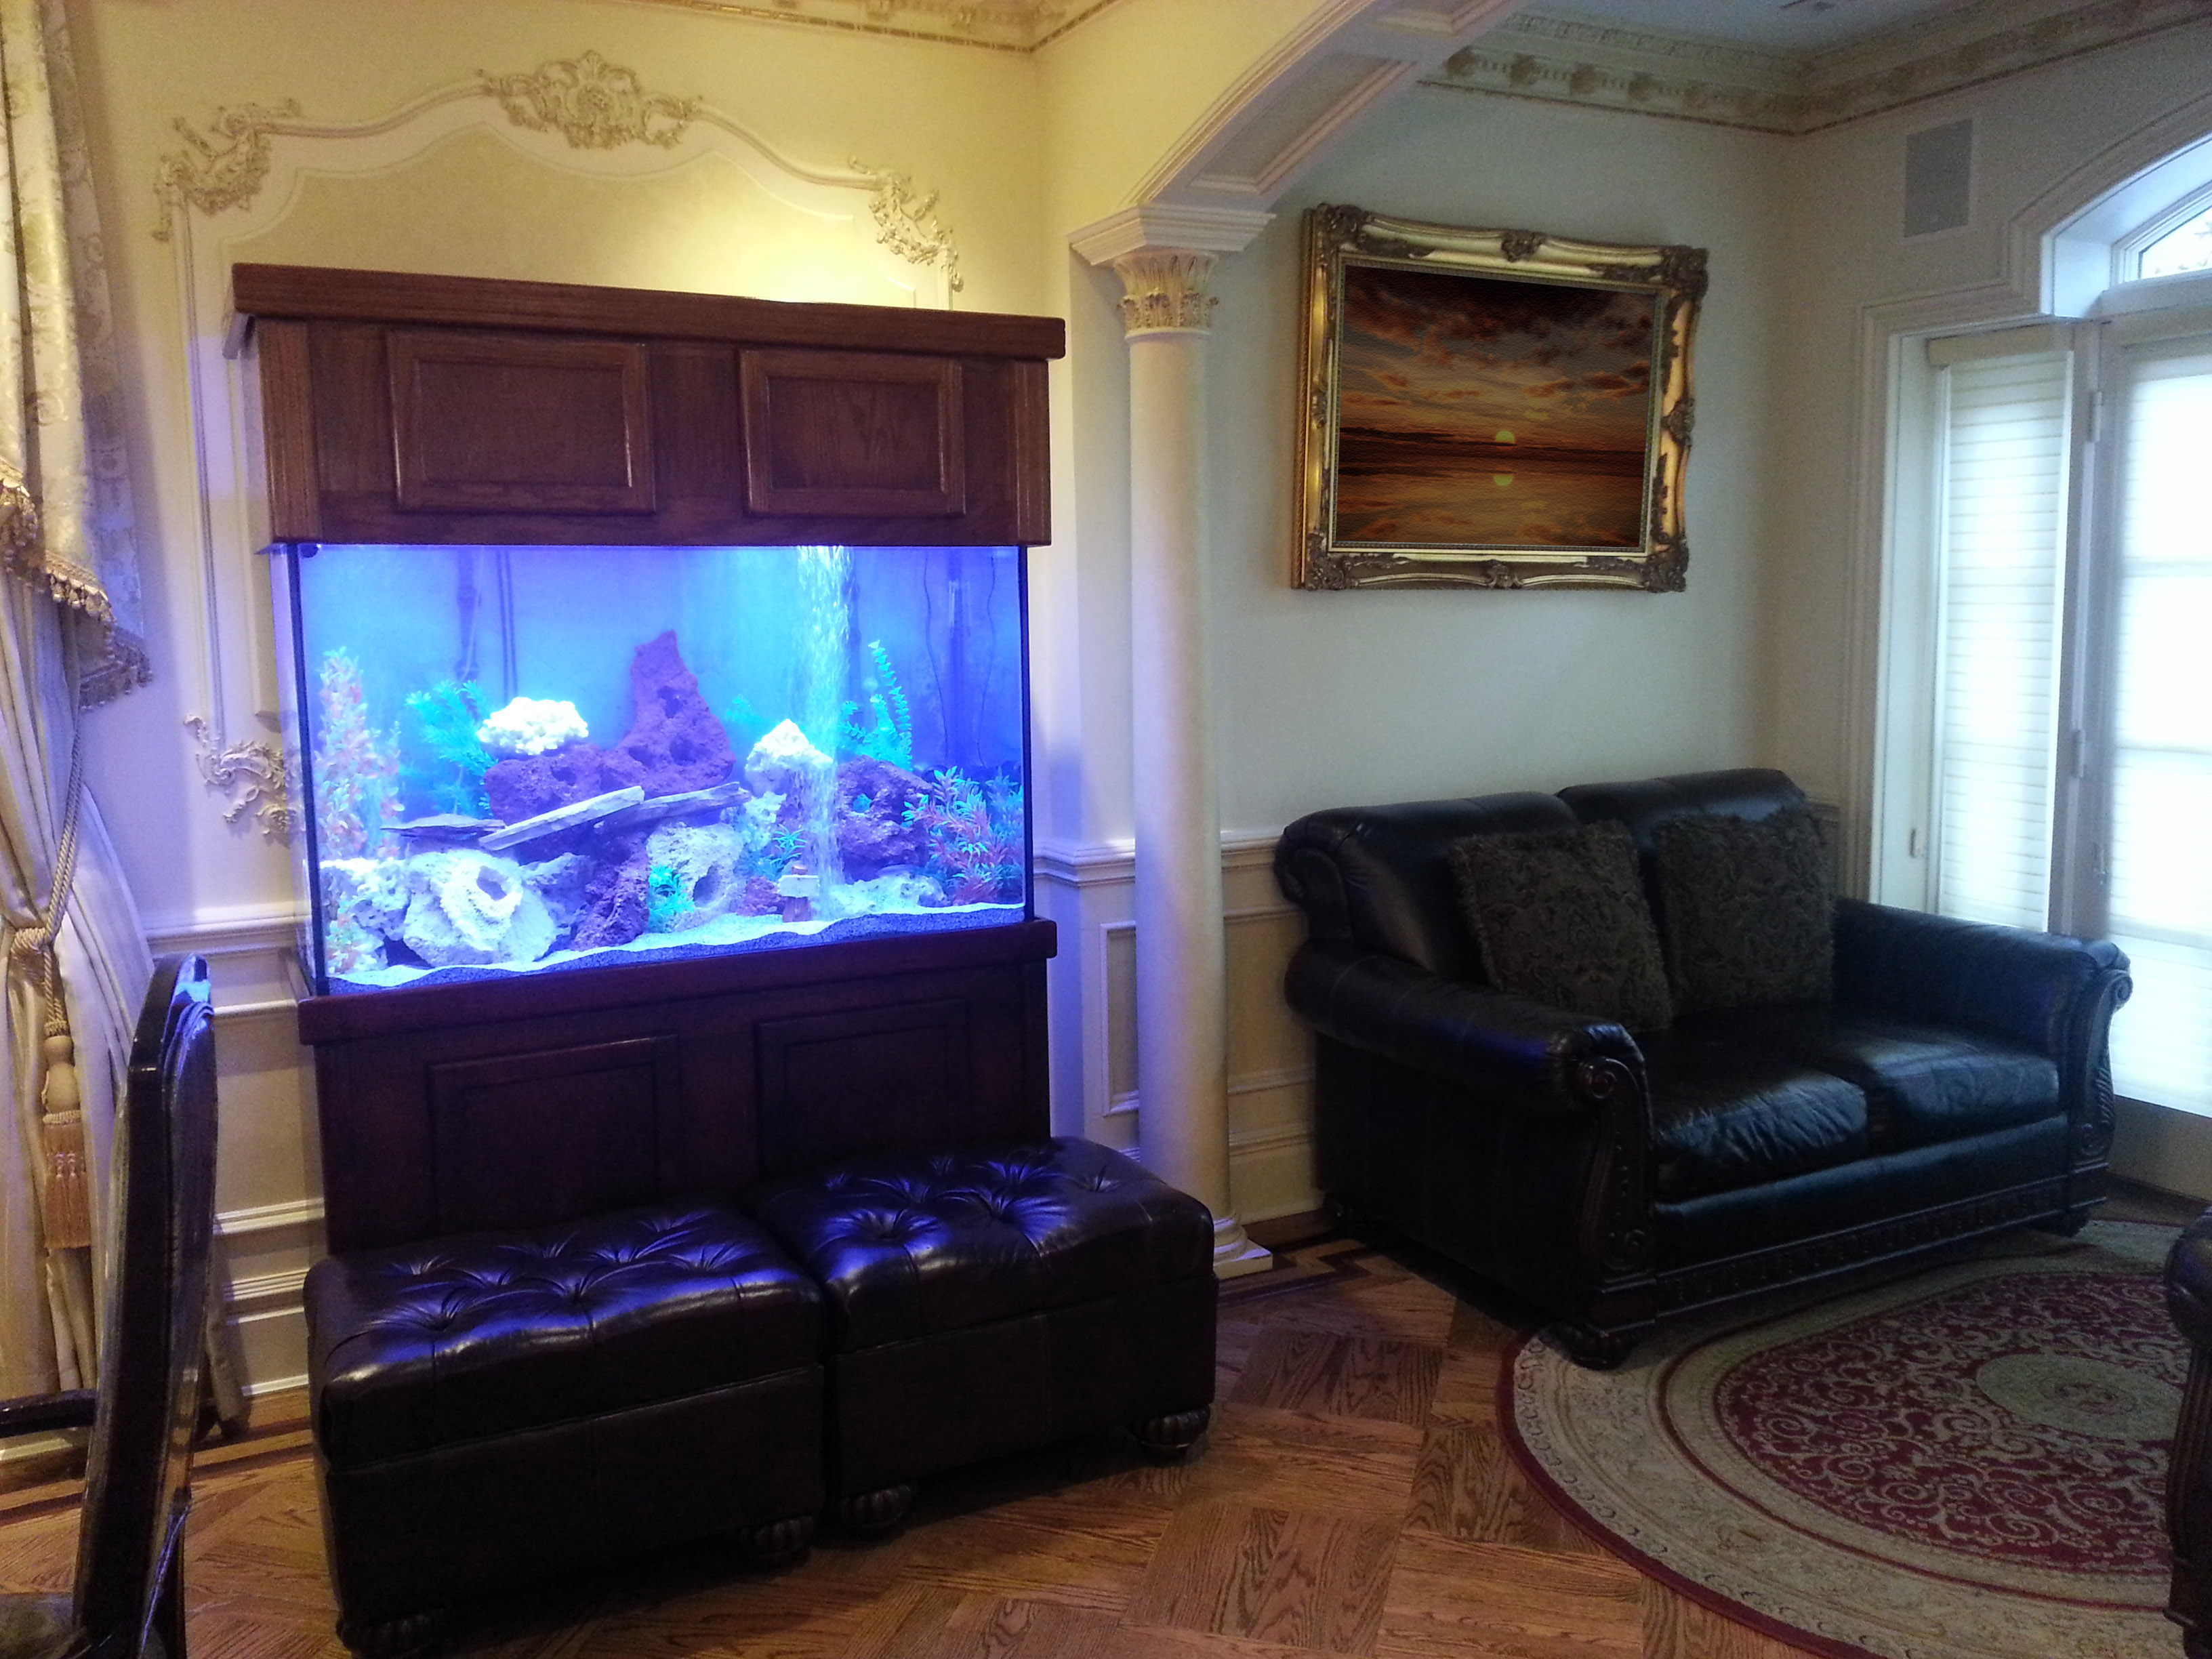 Bill Gates House Aquarium Living Room